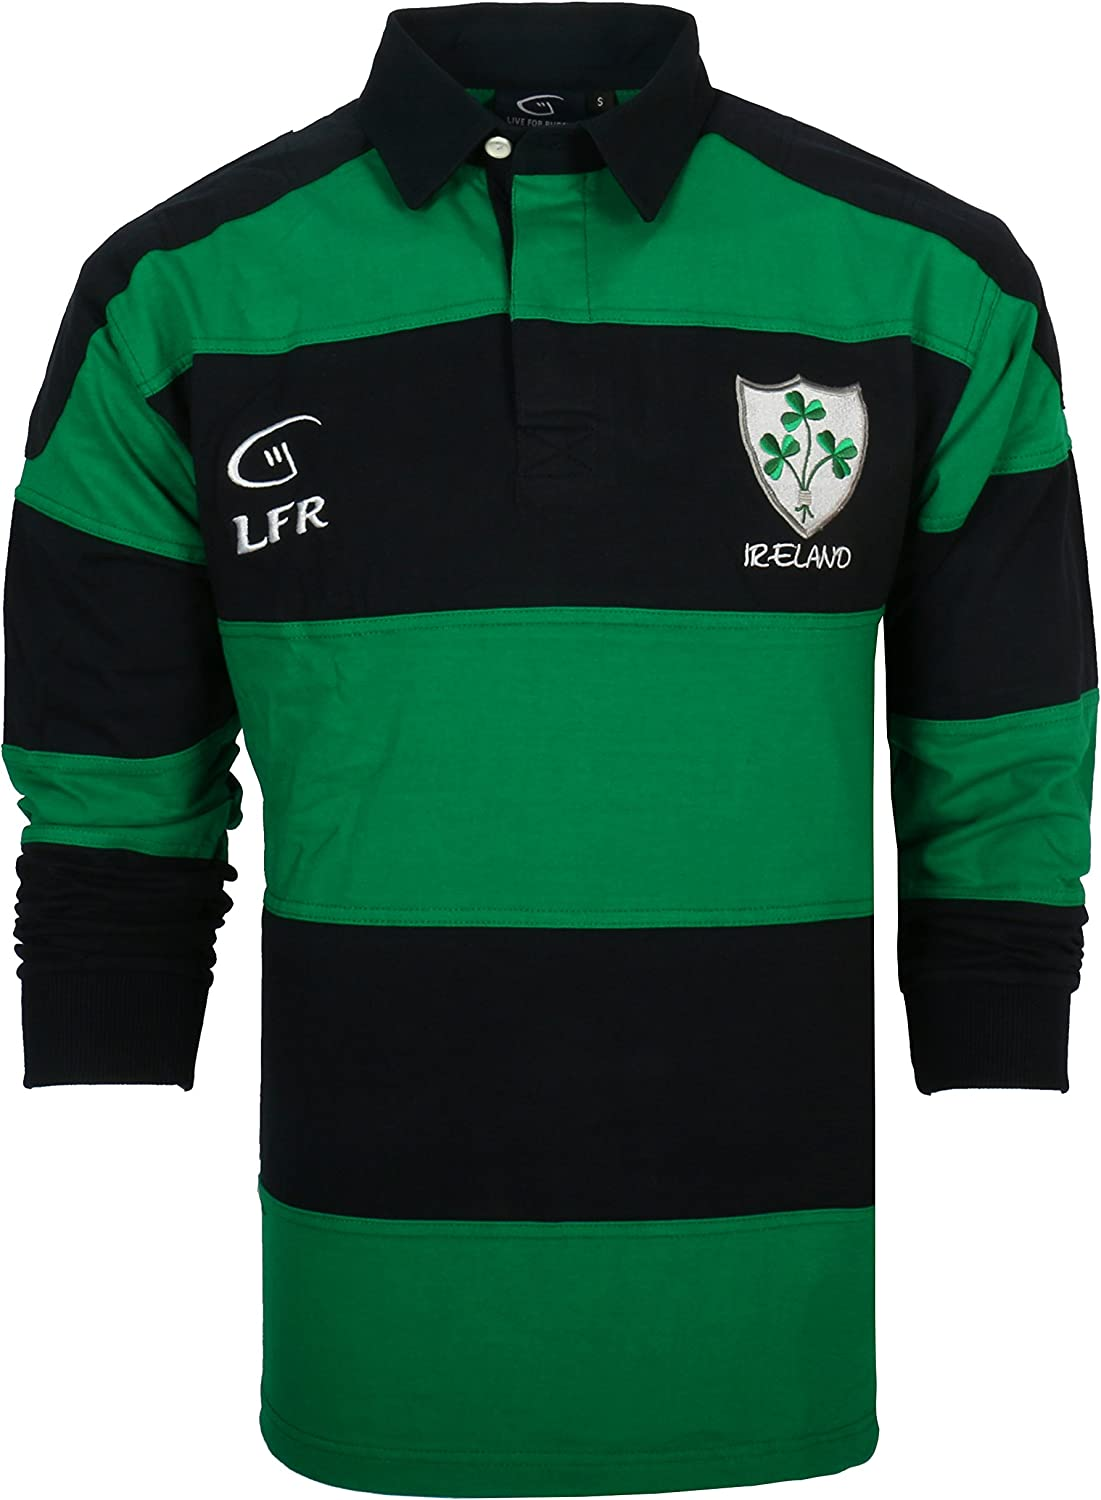 Long Sleeve Striped Shamrock Irish Rugby Shirt Kelly Green Navy Blue